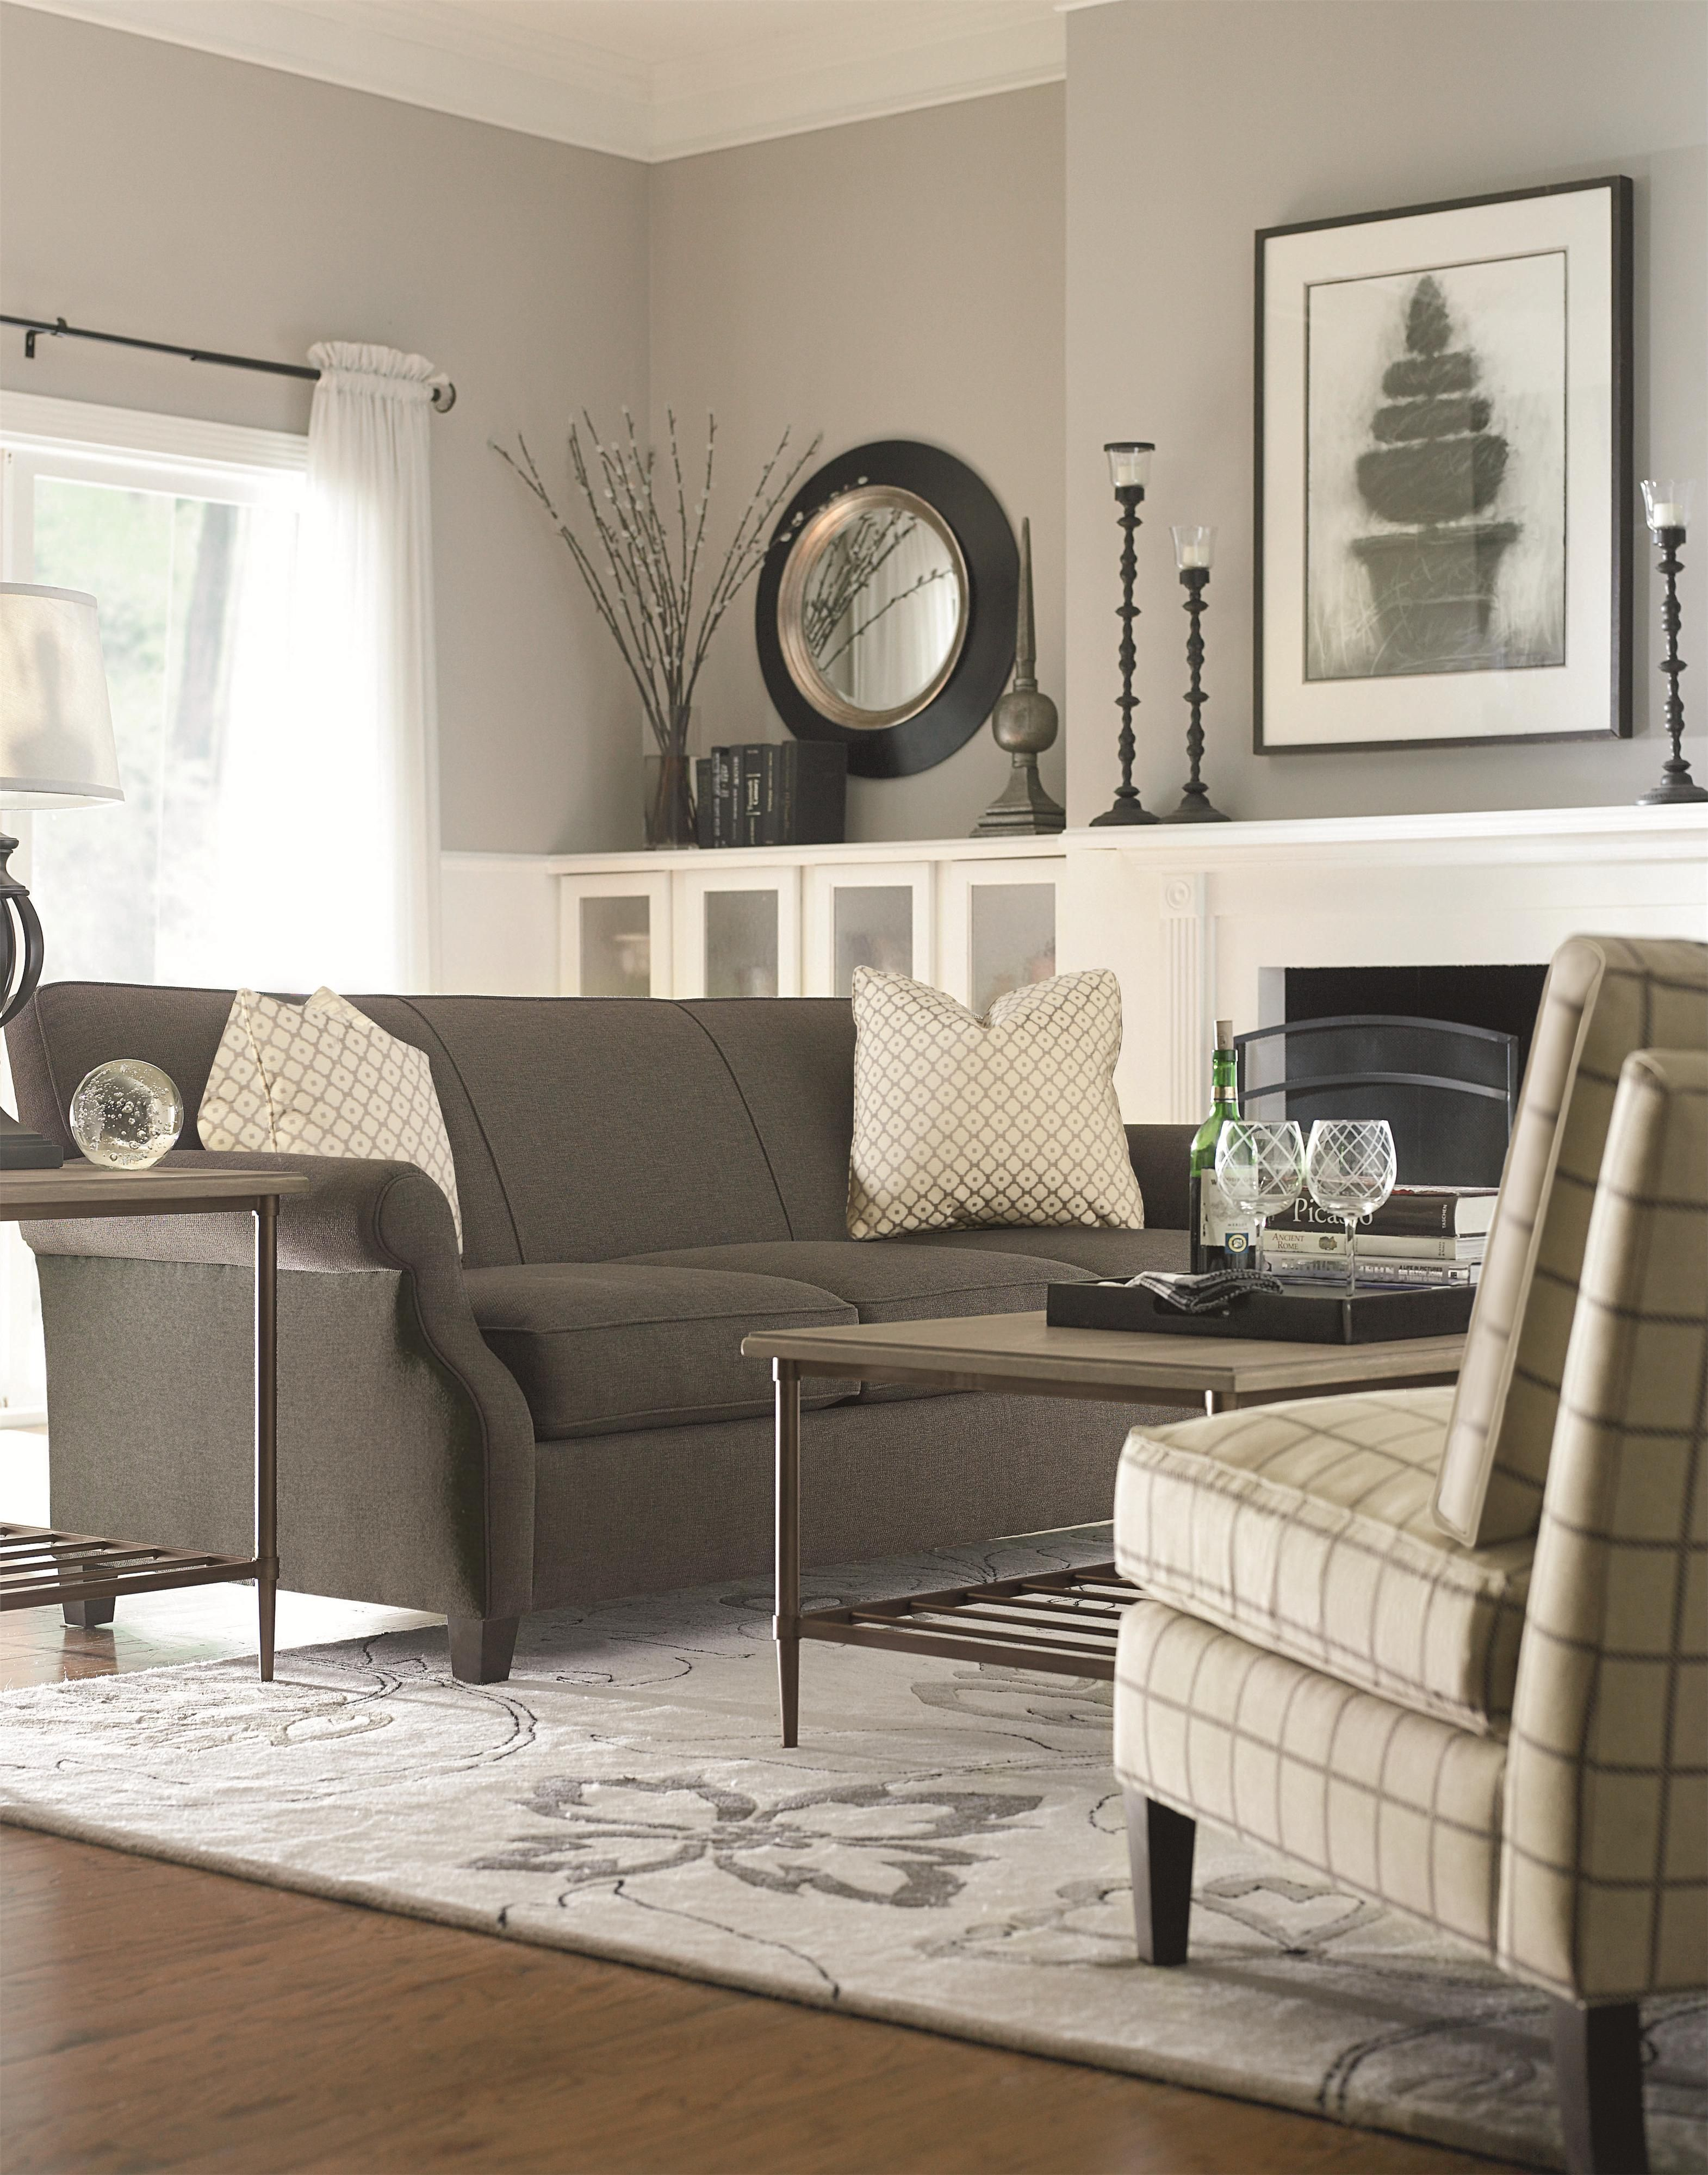 Relaxation At Home Capture The Warmth With GRAIN And Combine Gray Hues STONE IMAGINE For An Urban Feel Whether Or Not You Make Your